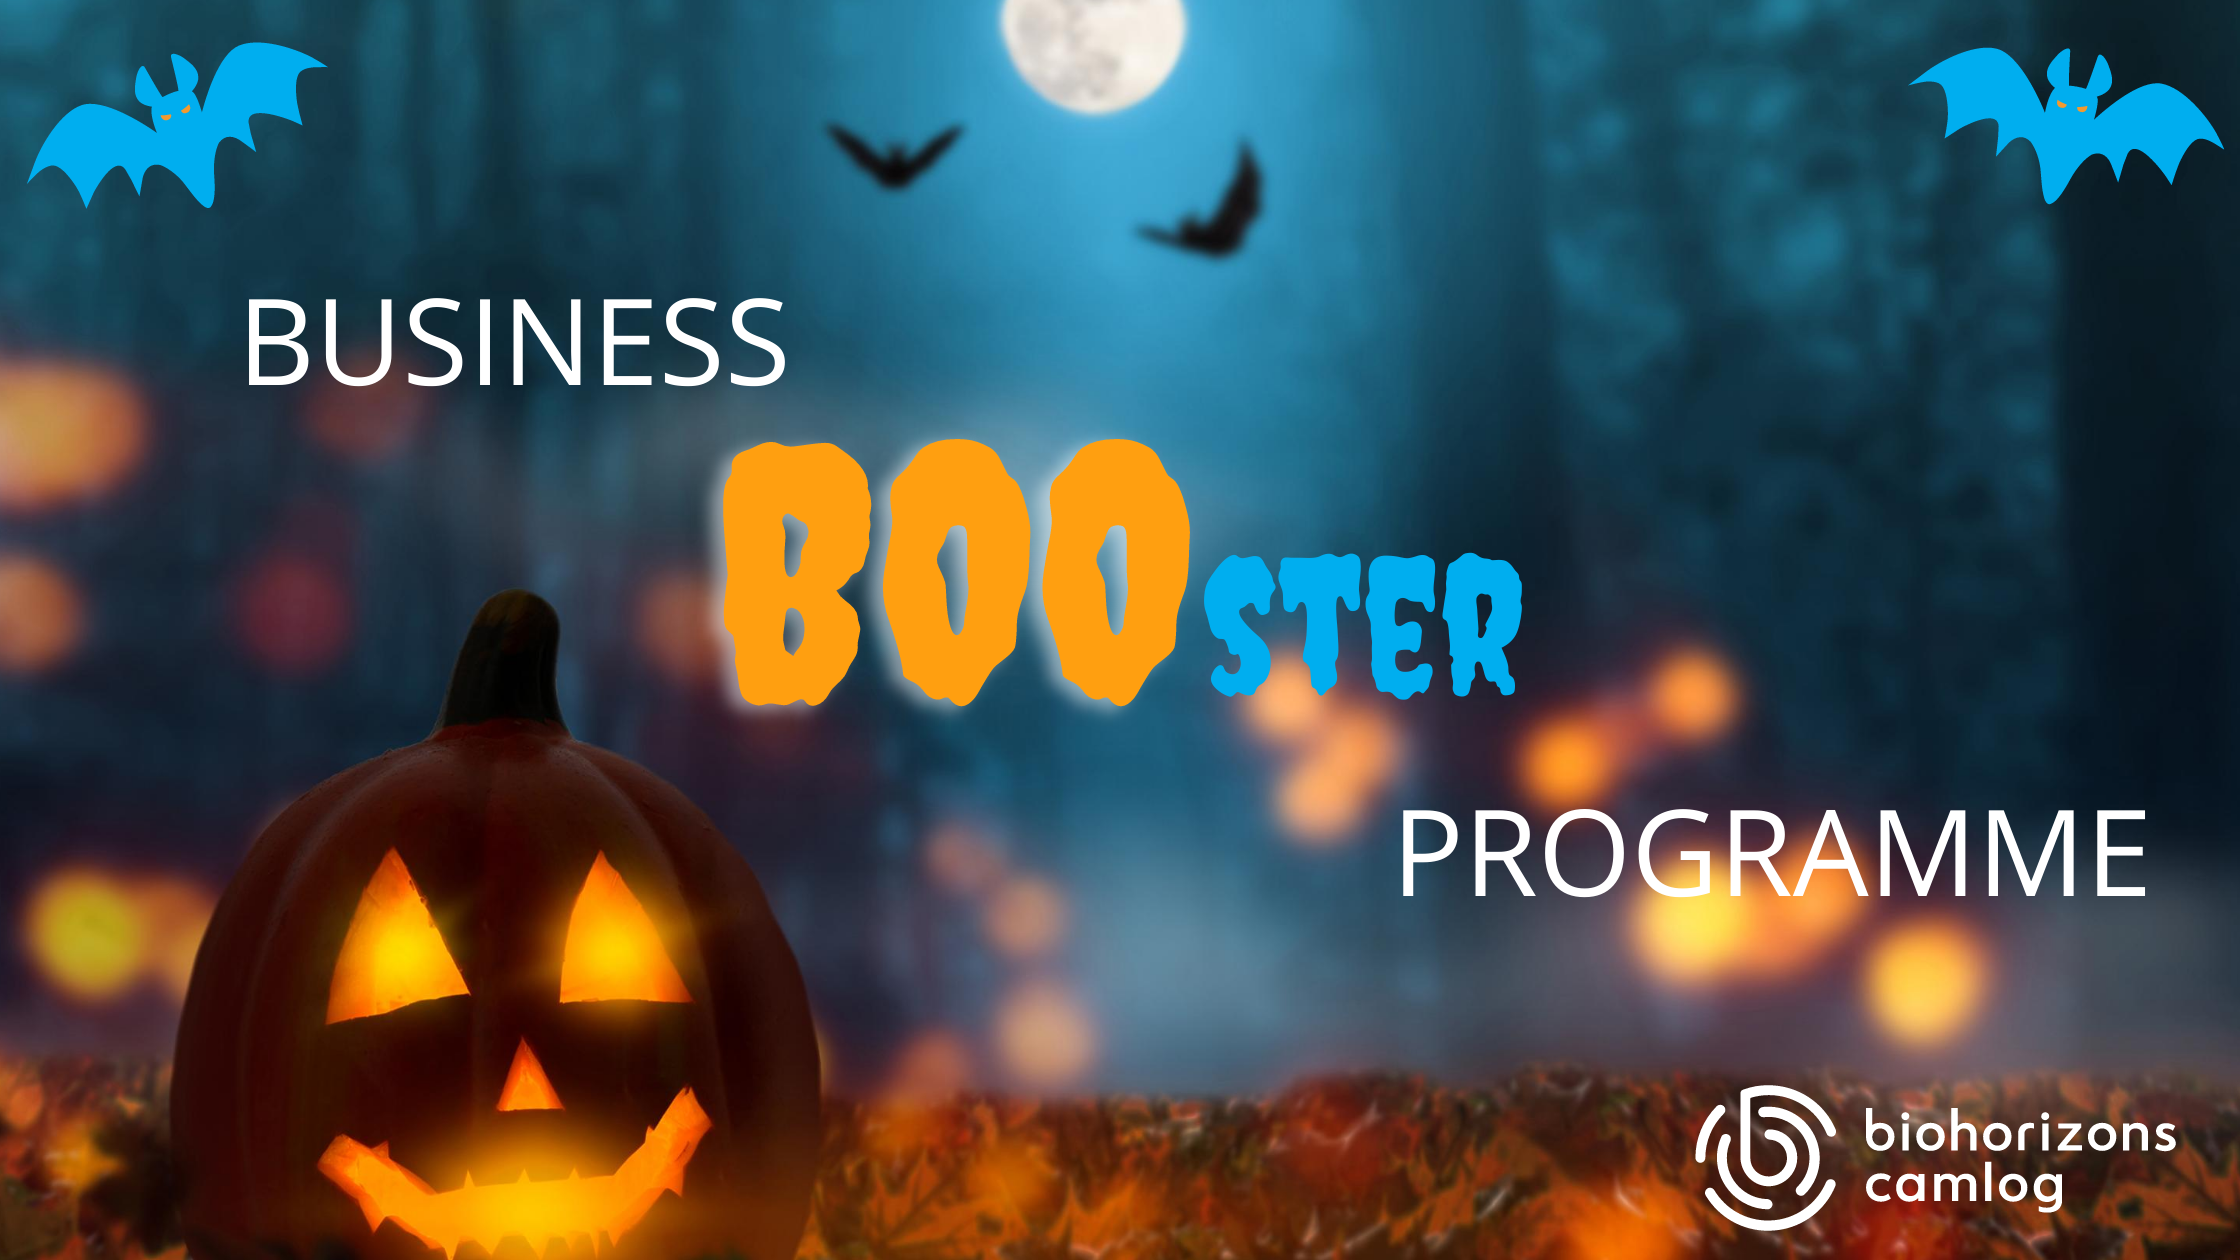 Business 'BOO'ster Programme - Session 3: Excel with Customer Service